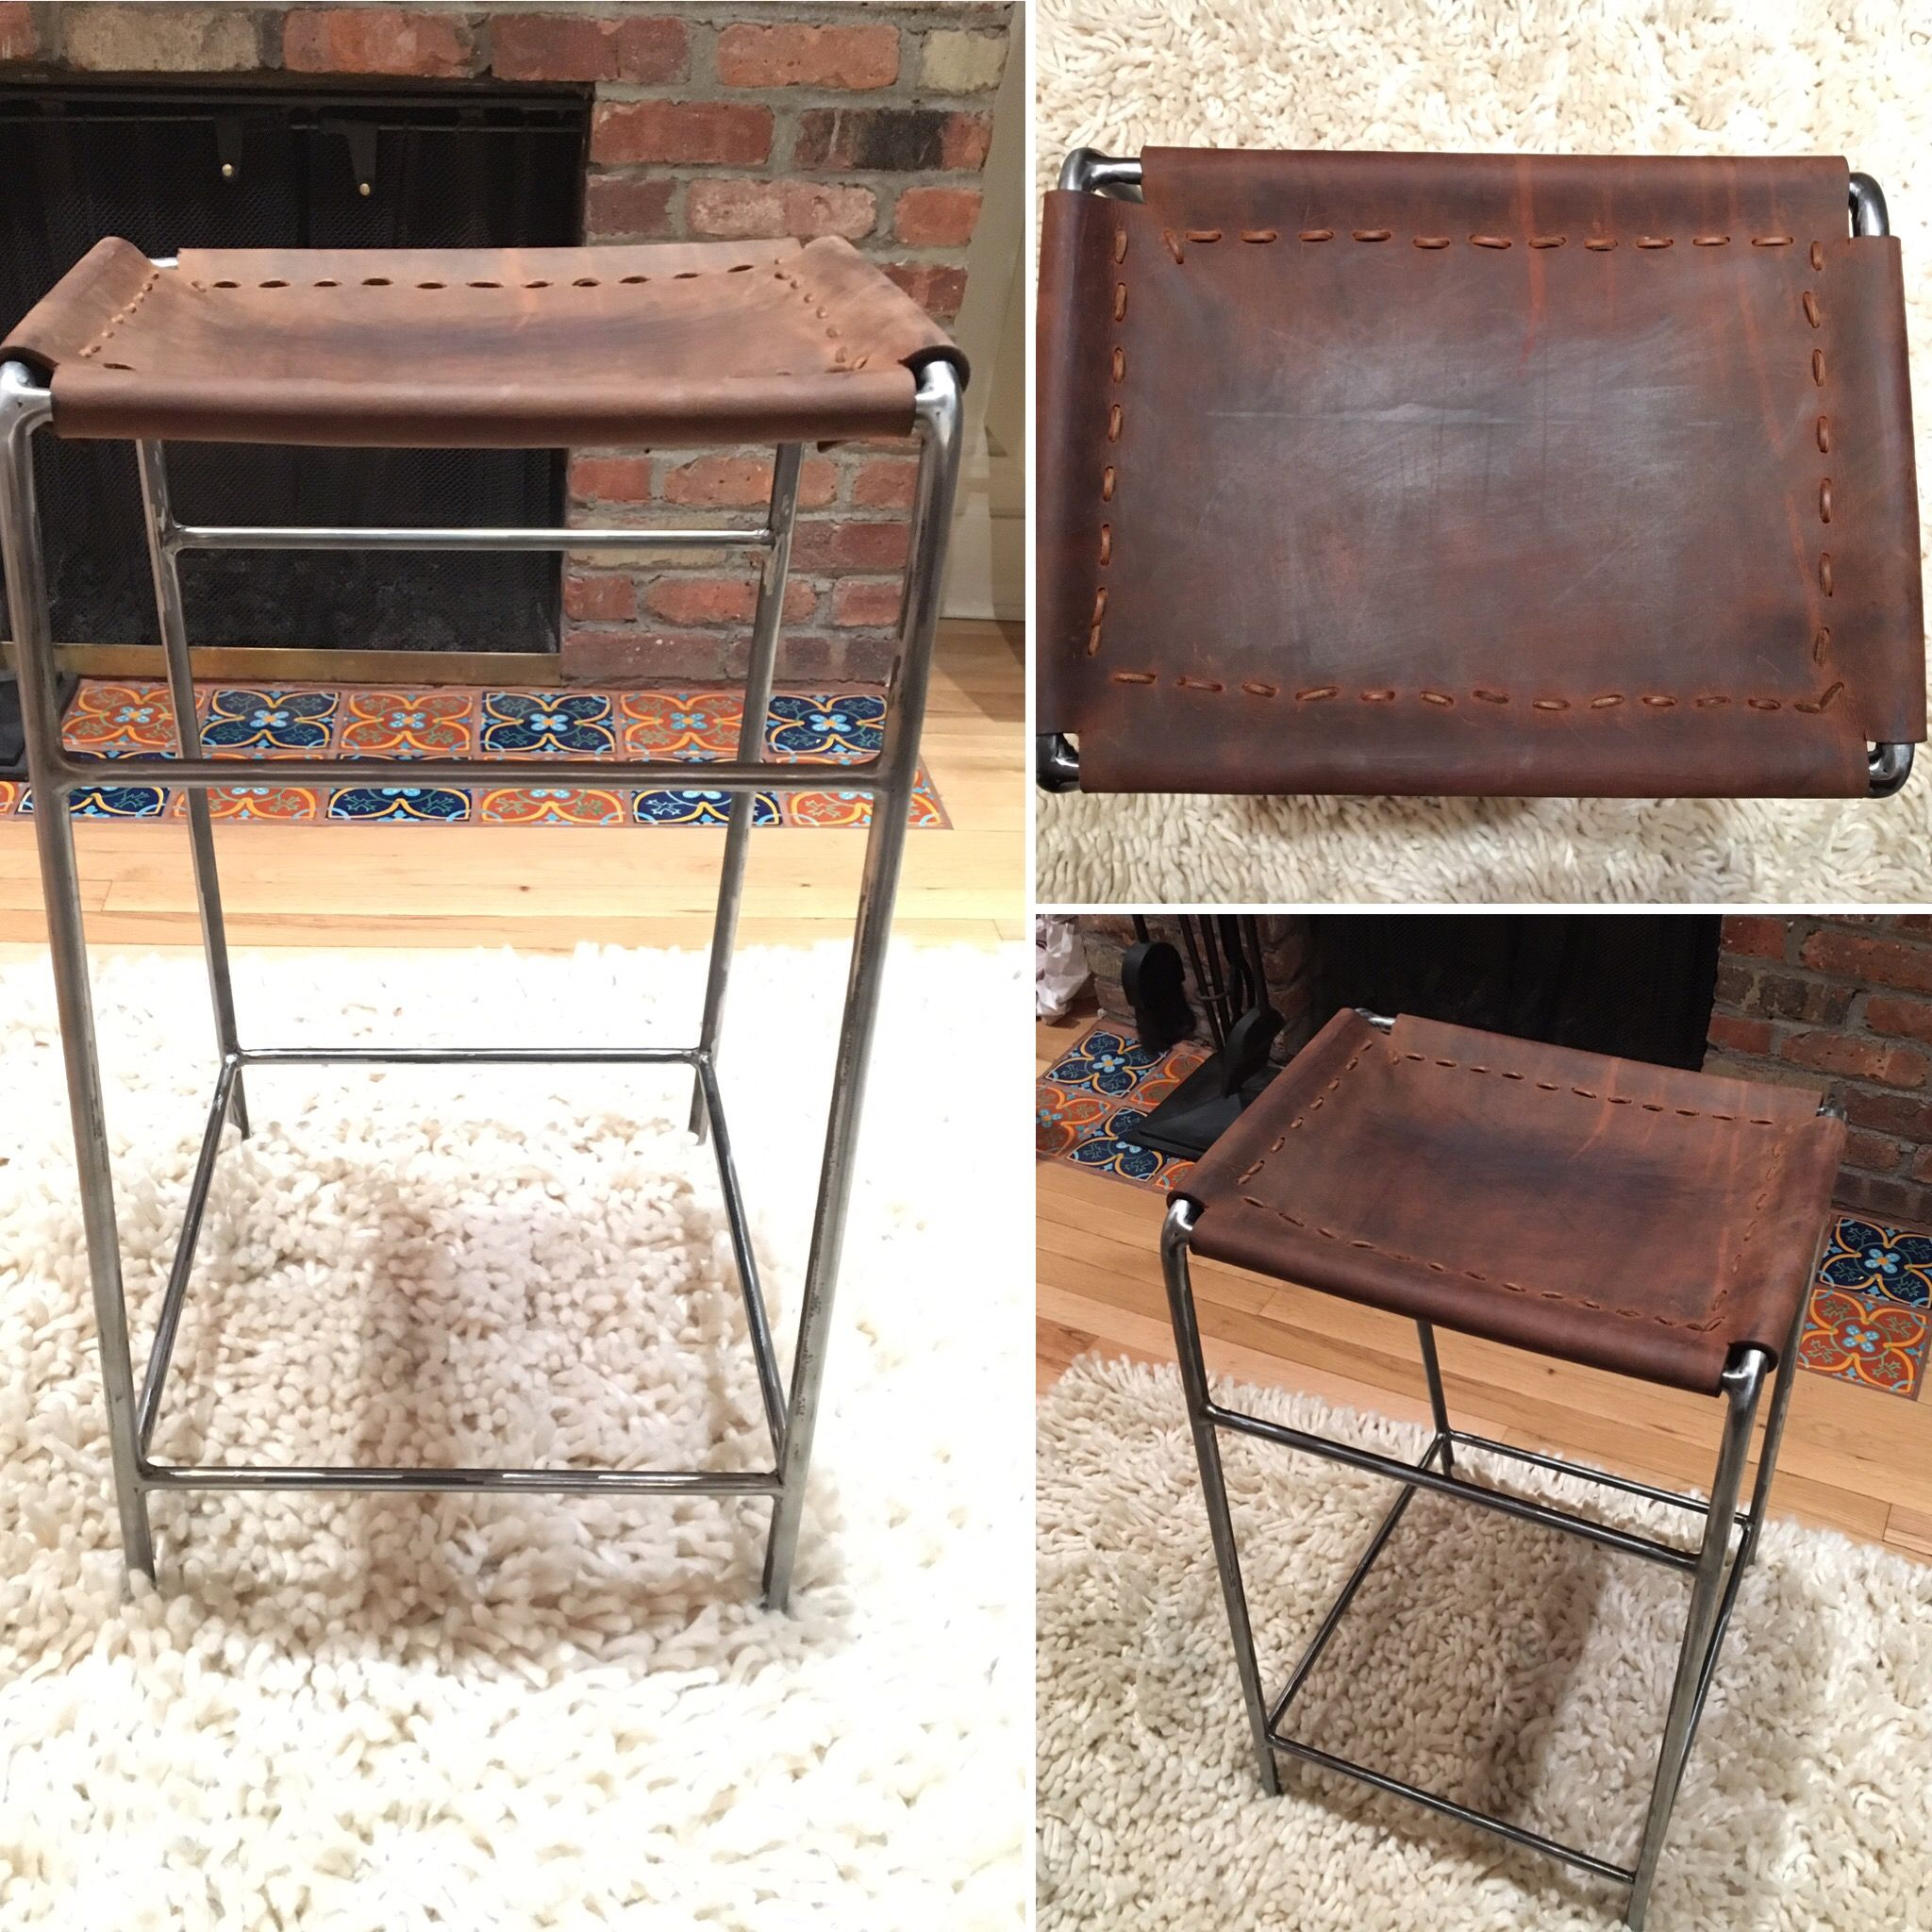 Steel And Buffalo Hide Stool Sealed With Bees Wax. Hand Made In Brooklyn, NY